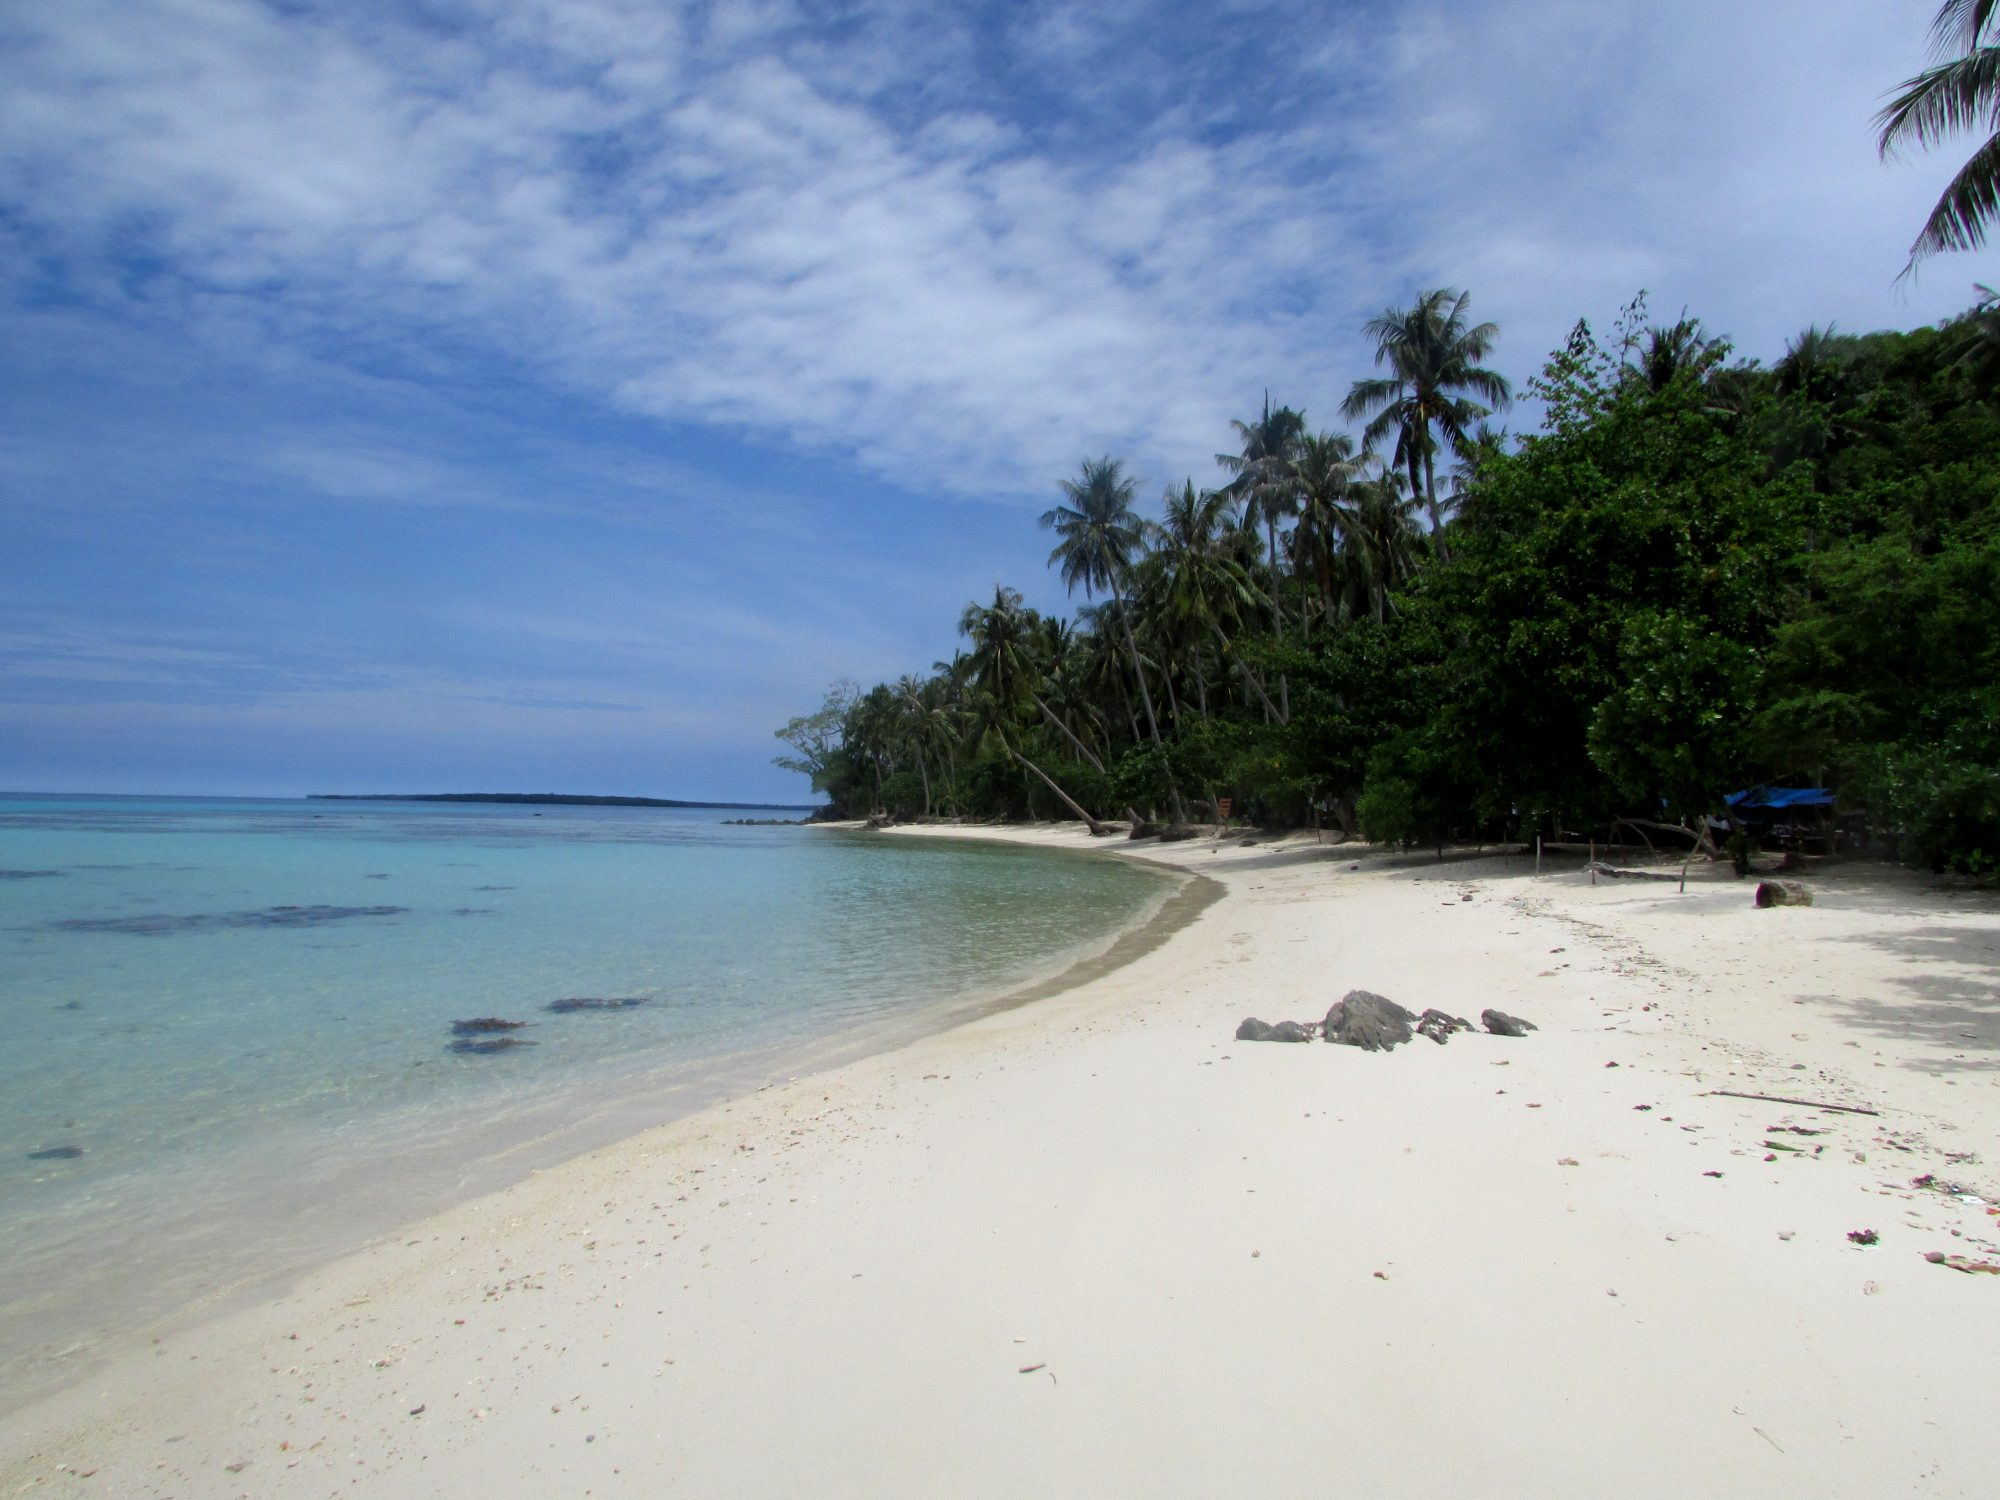 The Amazing Karimunjawa Islands in Indonesia - Please Visit Them Now!